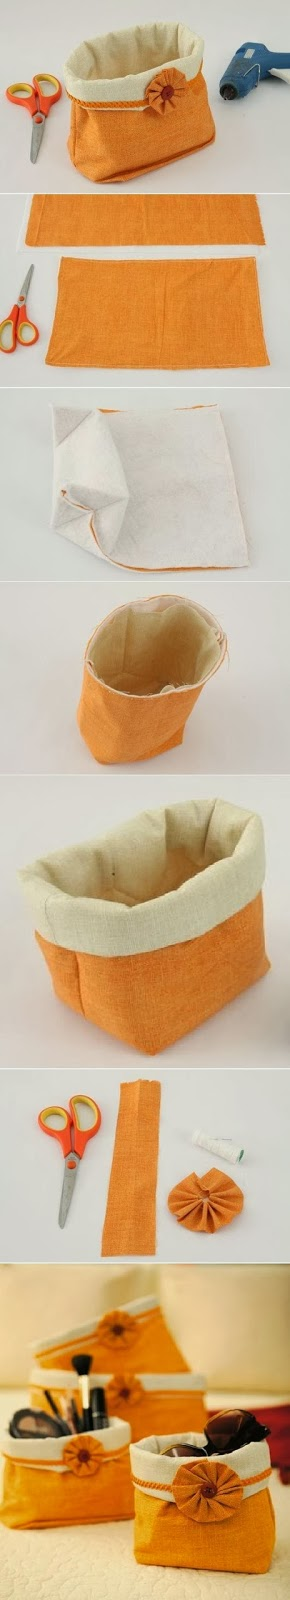 My DIY Projects How To Make A Charming Handbag